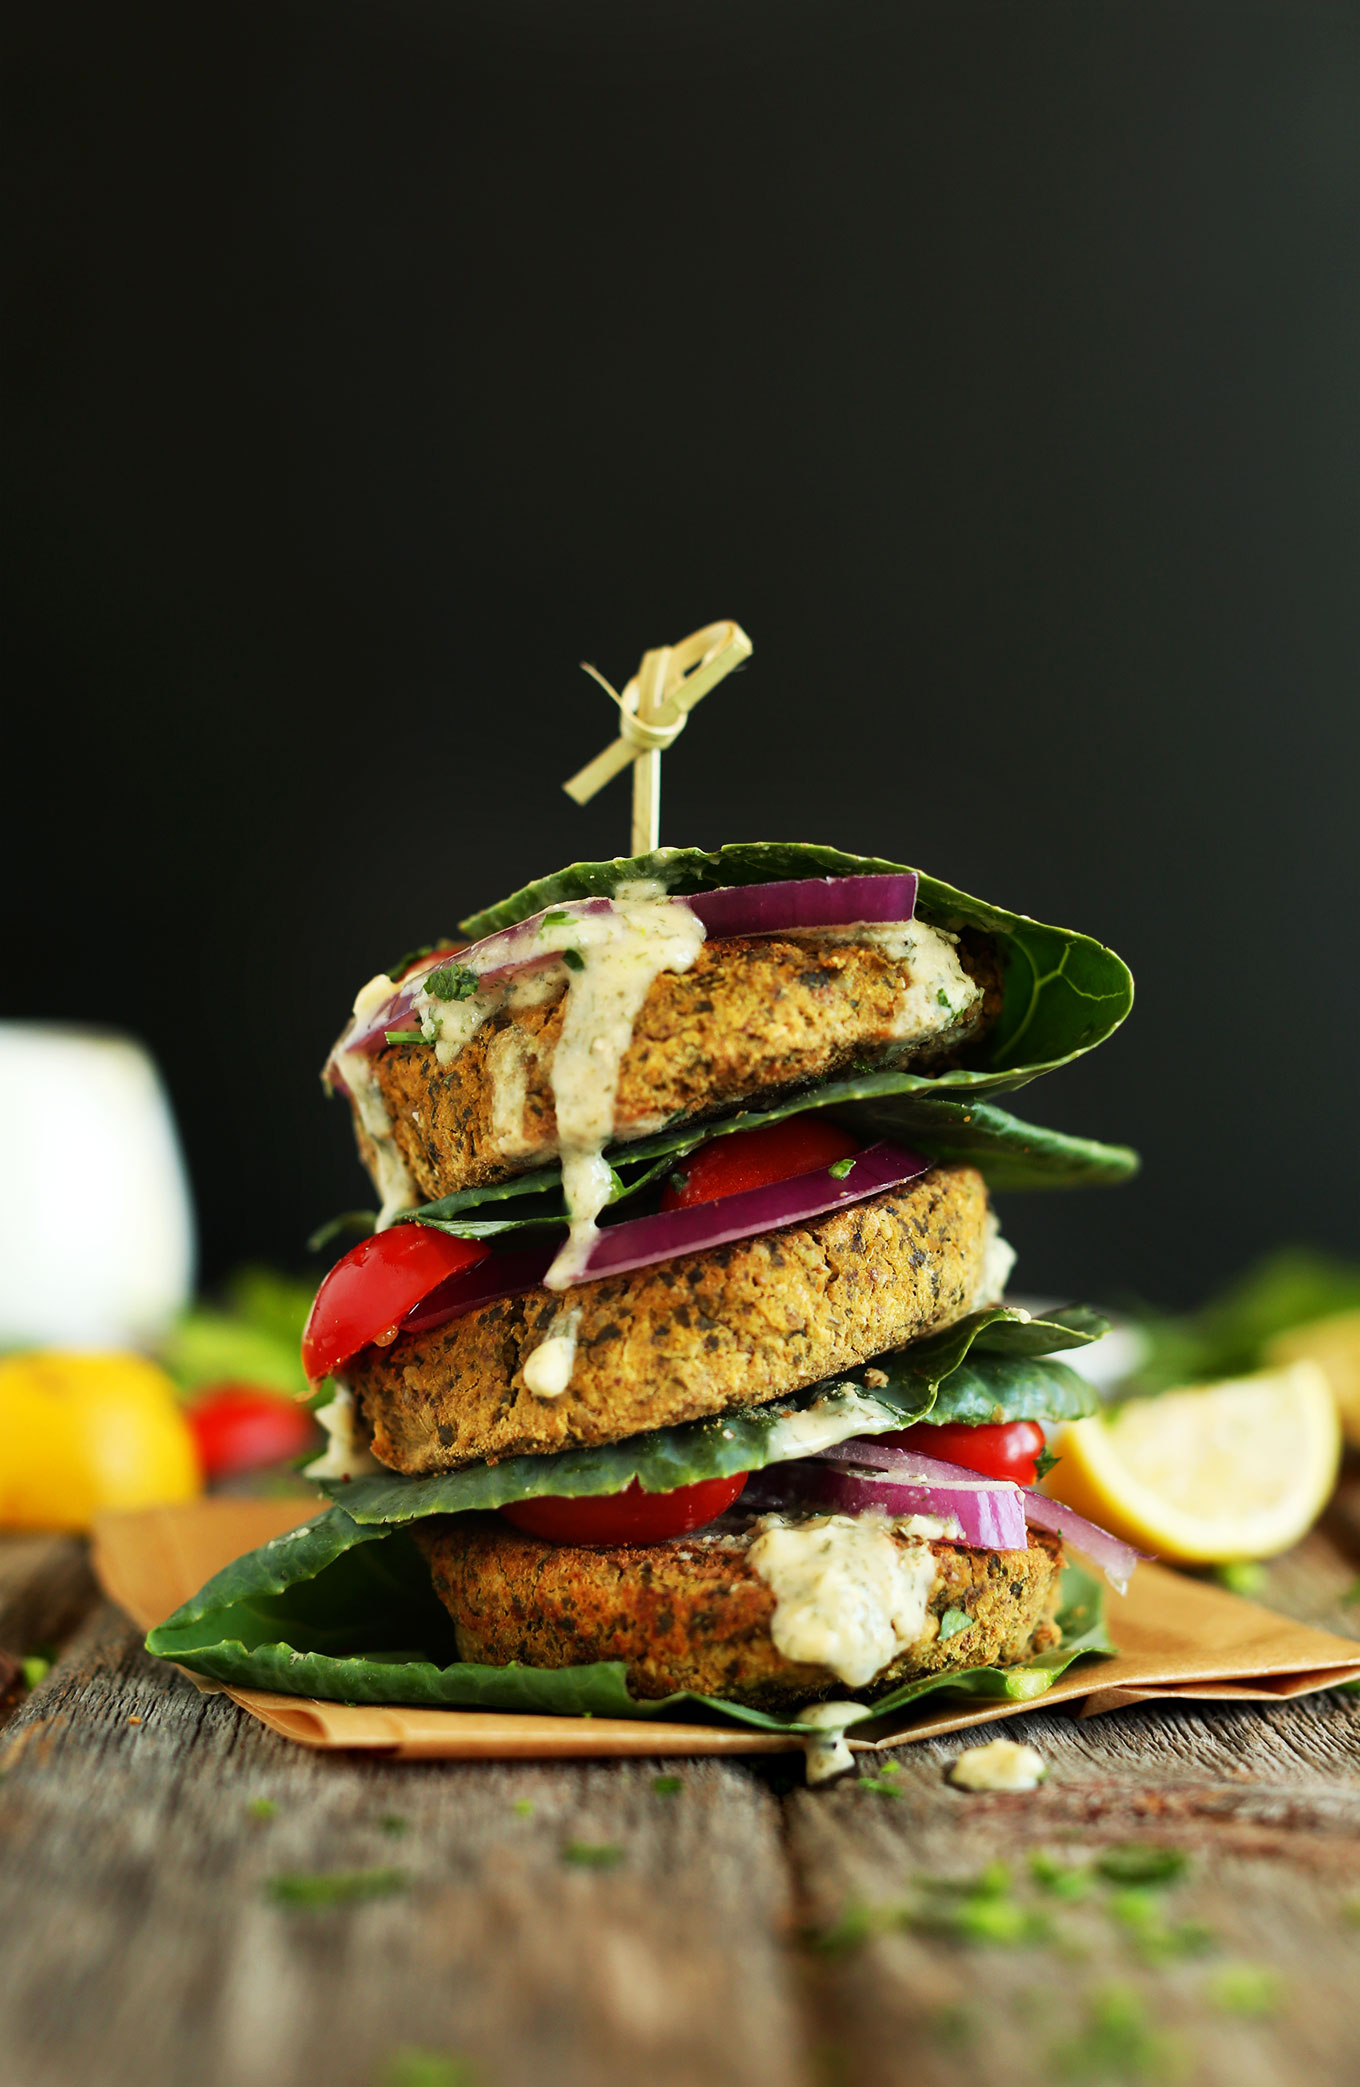 Stack of collard wrapped baked falafel burgers held together with a toothpick